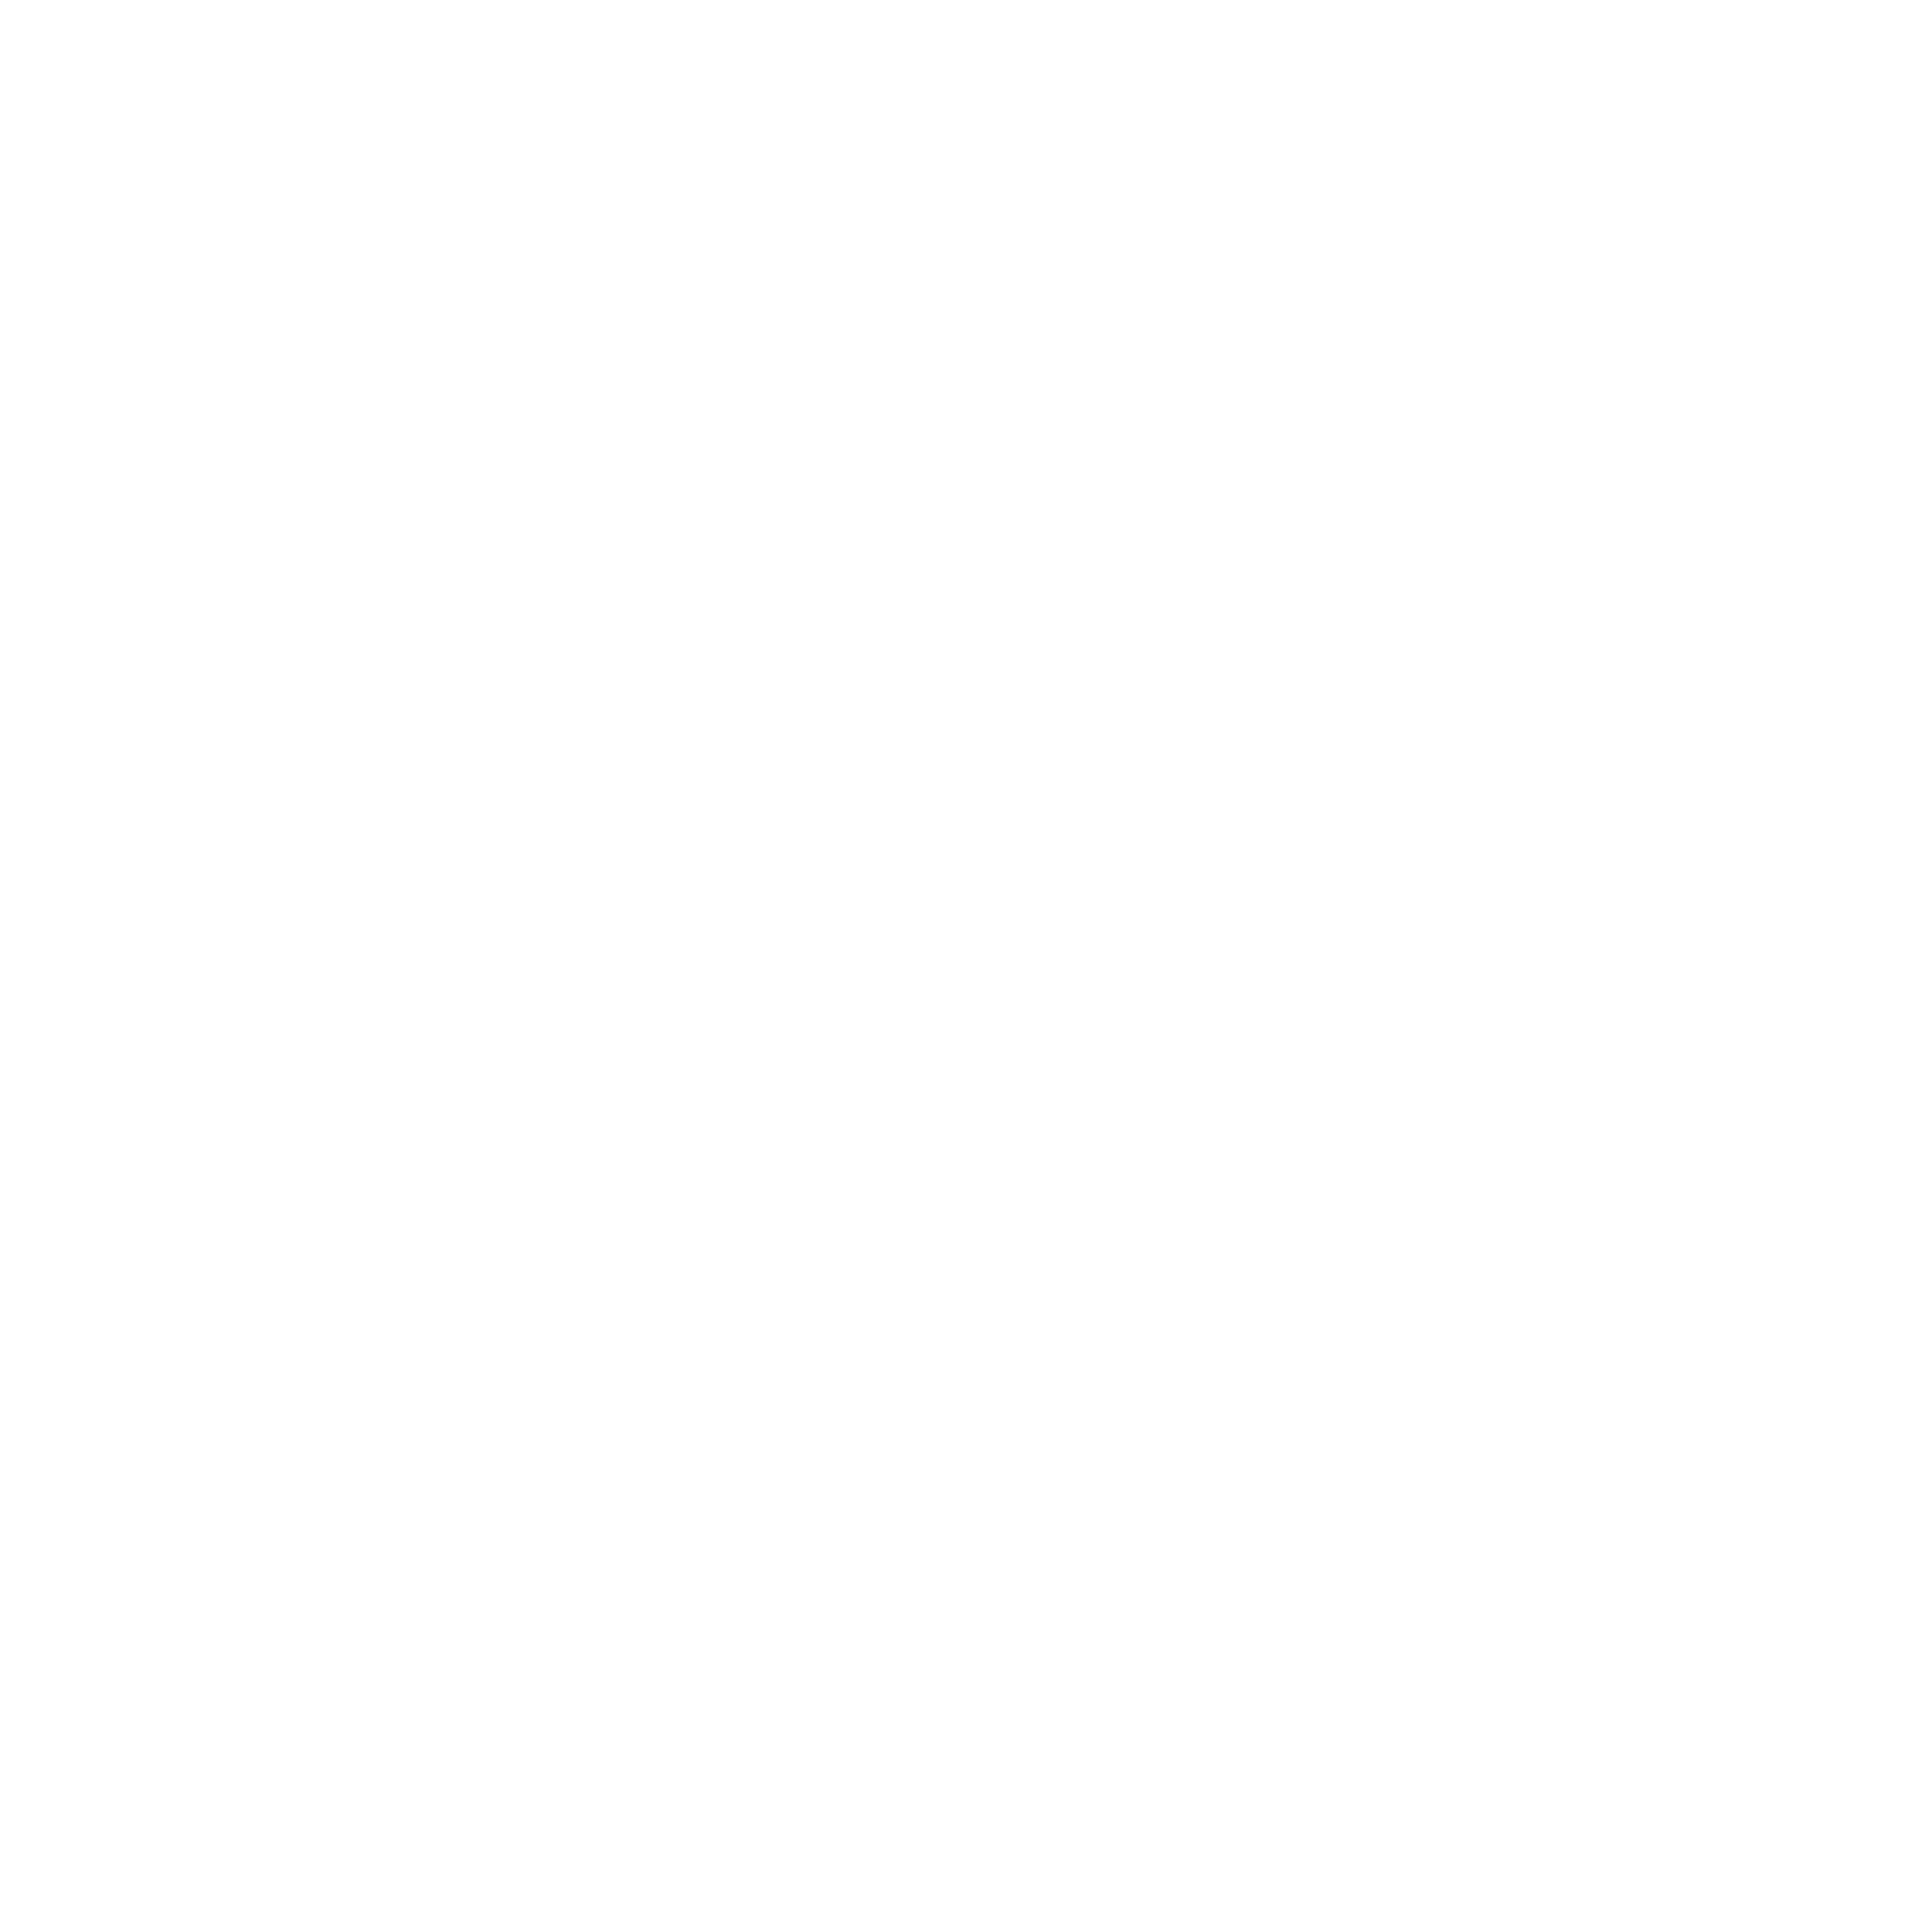 entertainment-weekly-logo-black-and-white-2.png